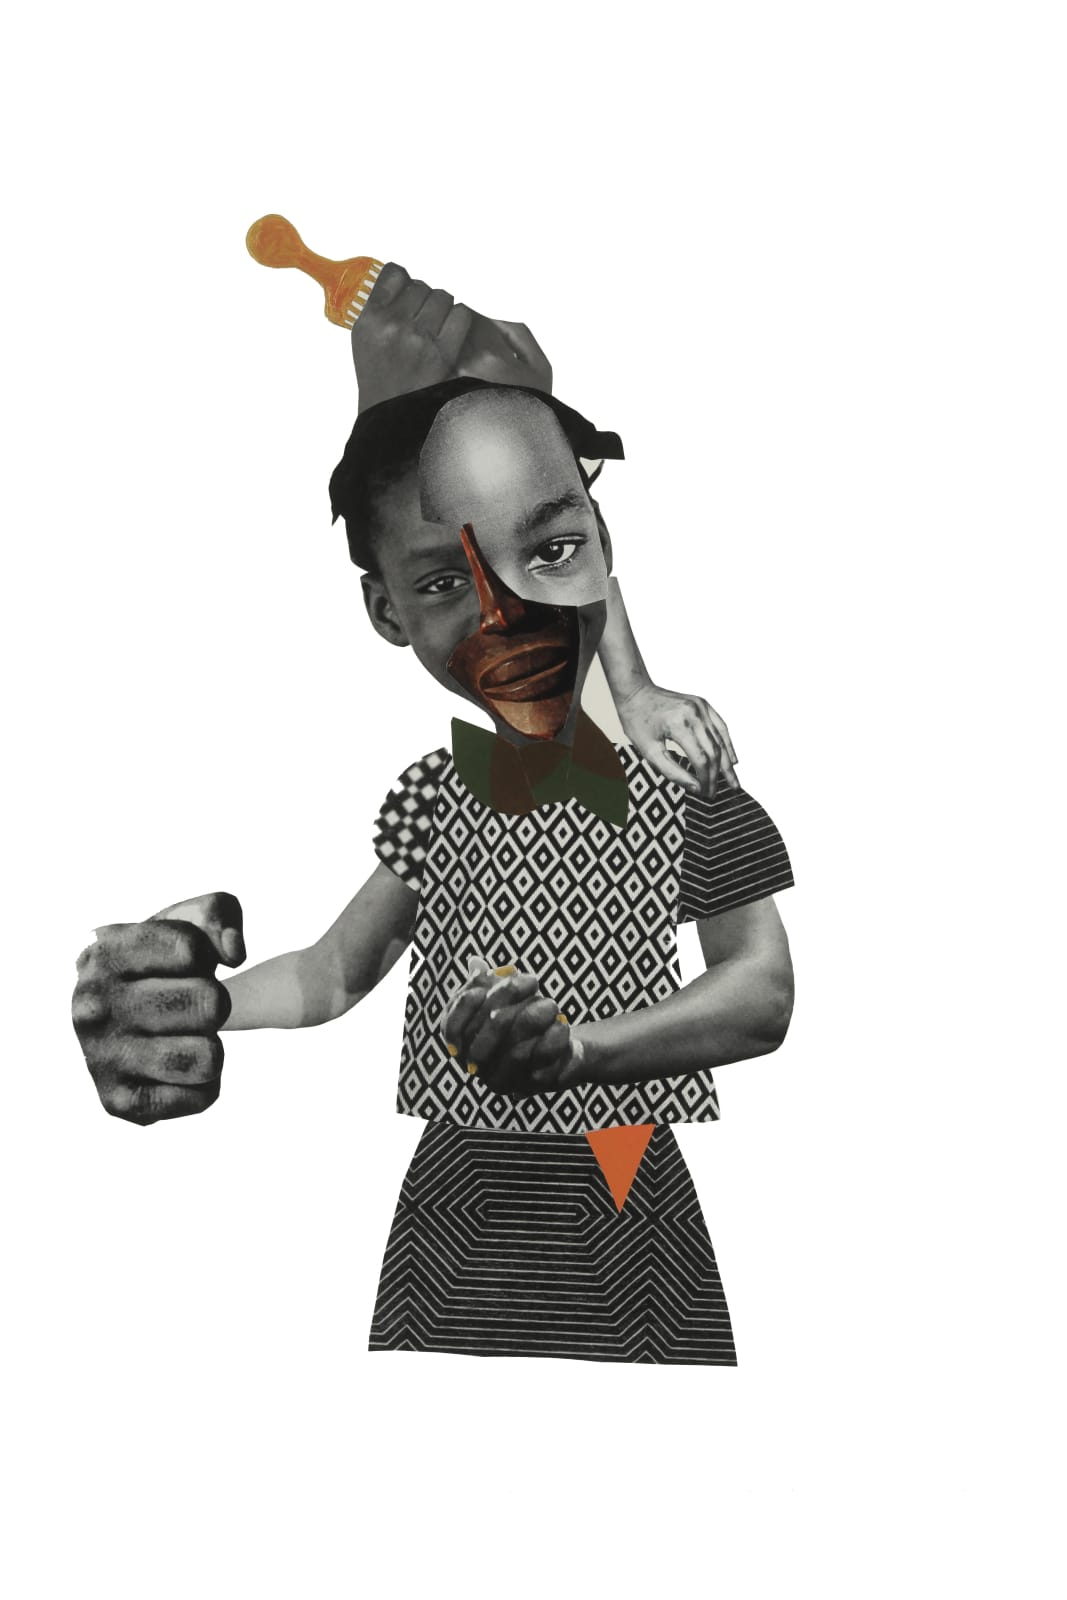 Deborah Roberts About Face, 2017 mixed media on paper 30 x 22 in.